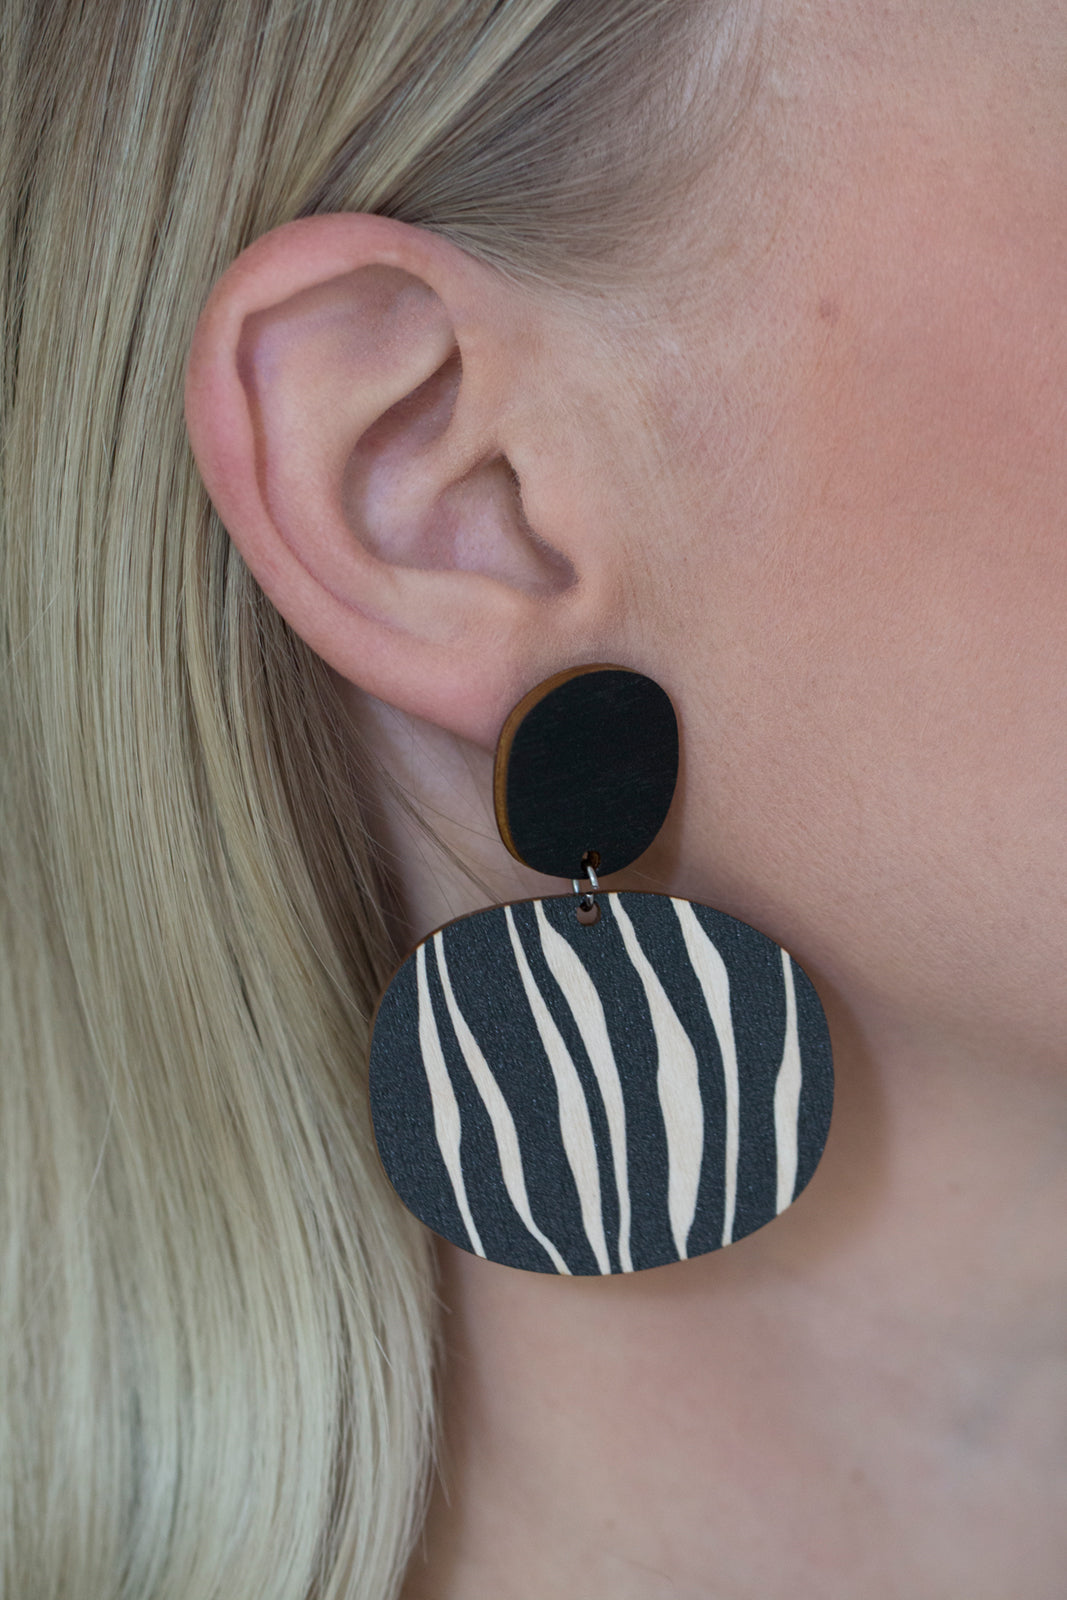 Kivi earrings in use, black and white